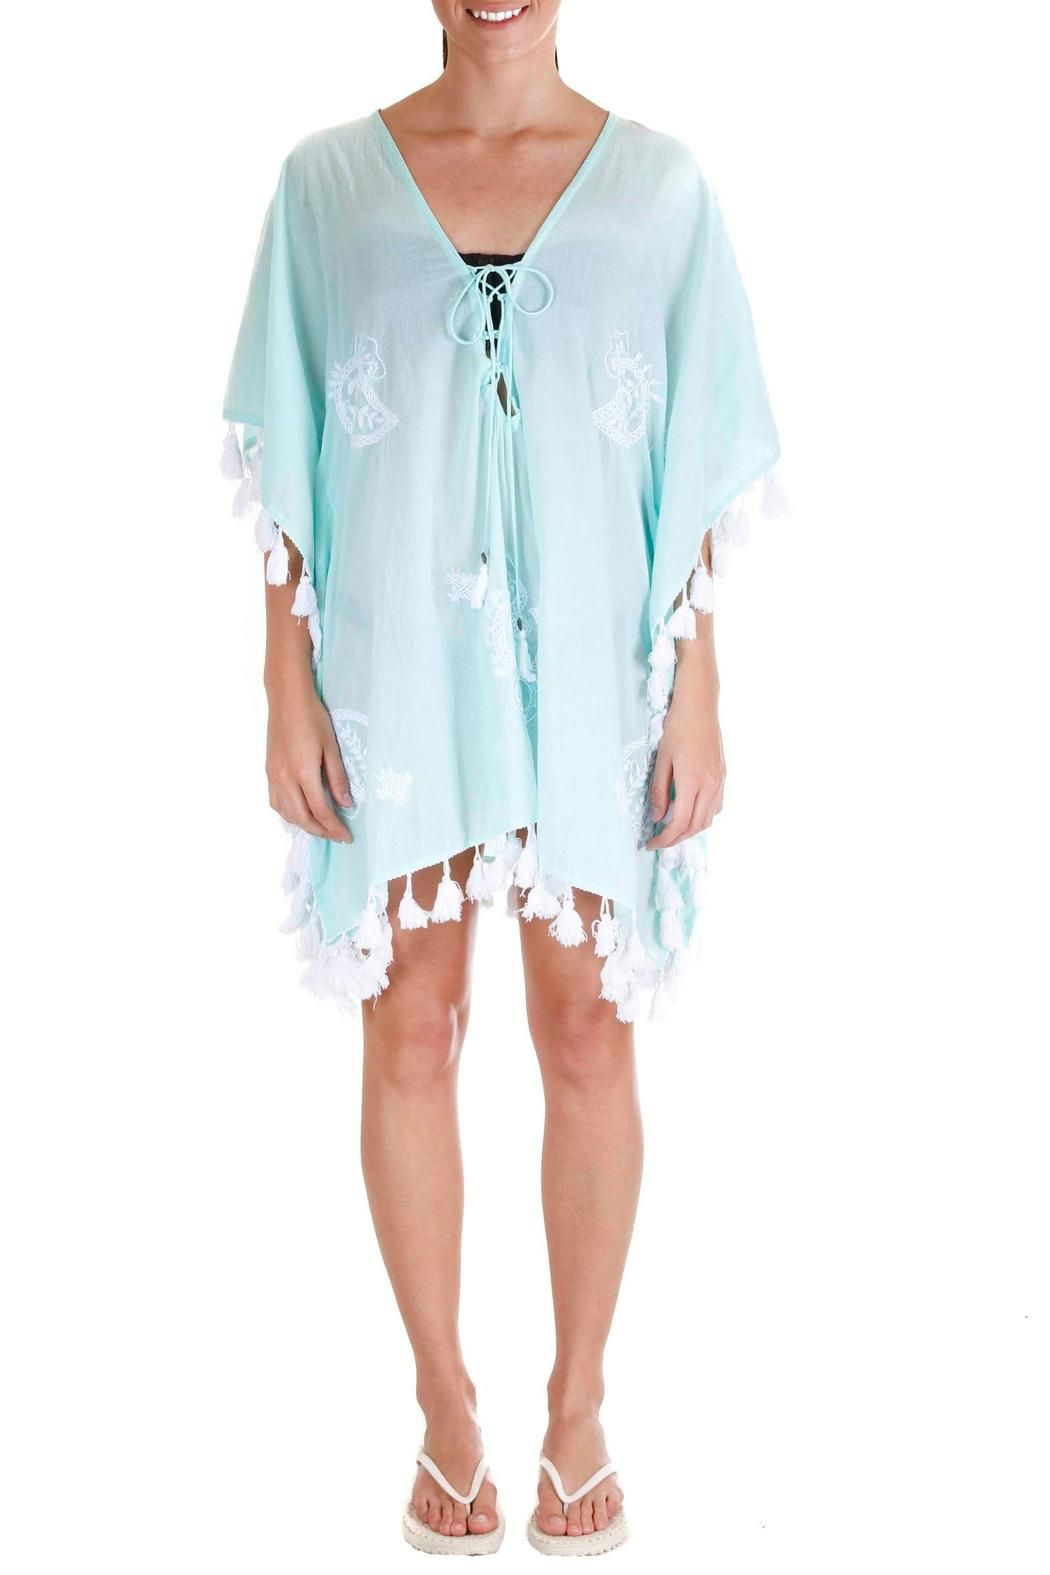 Boho beach. Effortless is stylish an the Z&L White Sands CoverUp proves that true. Over anything, this tunic style cover is a gorgeous universally flattering hue finished with bright white tassels to give a bohemian flare to an otherwise classic shape and style. From pool to sand this piece offers stylish luxury with an easy feel and wear ability.   White Sands Coverup by Z&L Europe. Clothing - Swimwear - Cover Ups New York